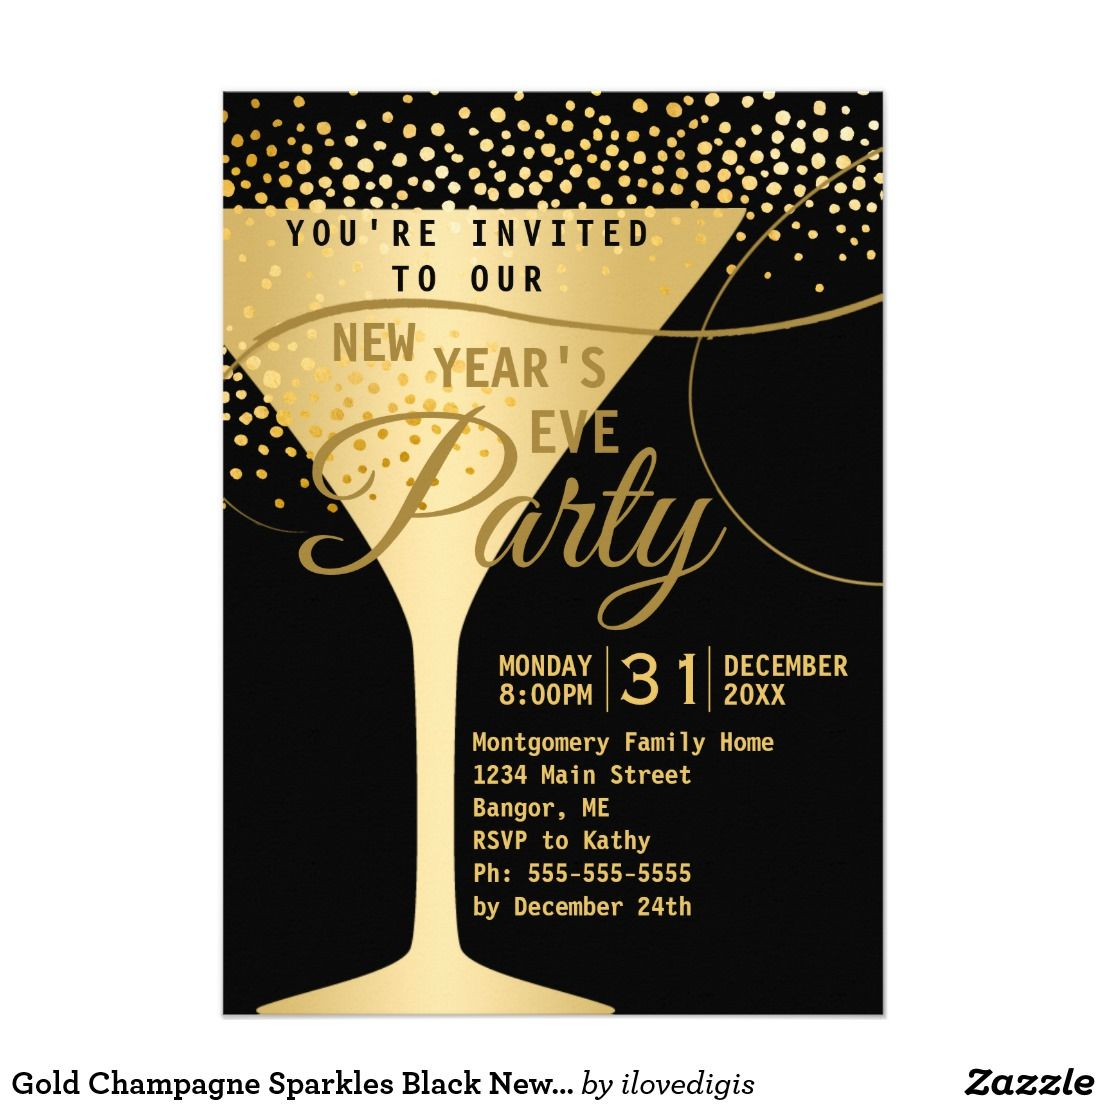 Gold Champagne Sparkles Black New Years Eve Party